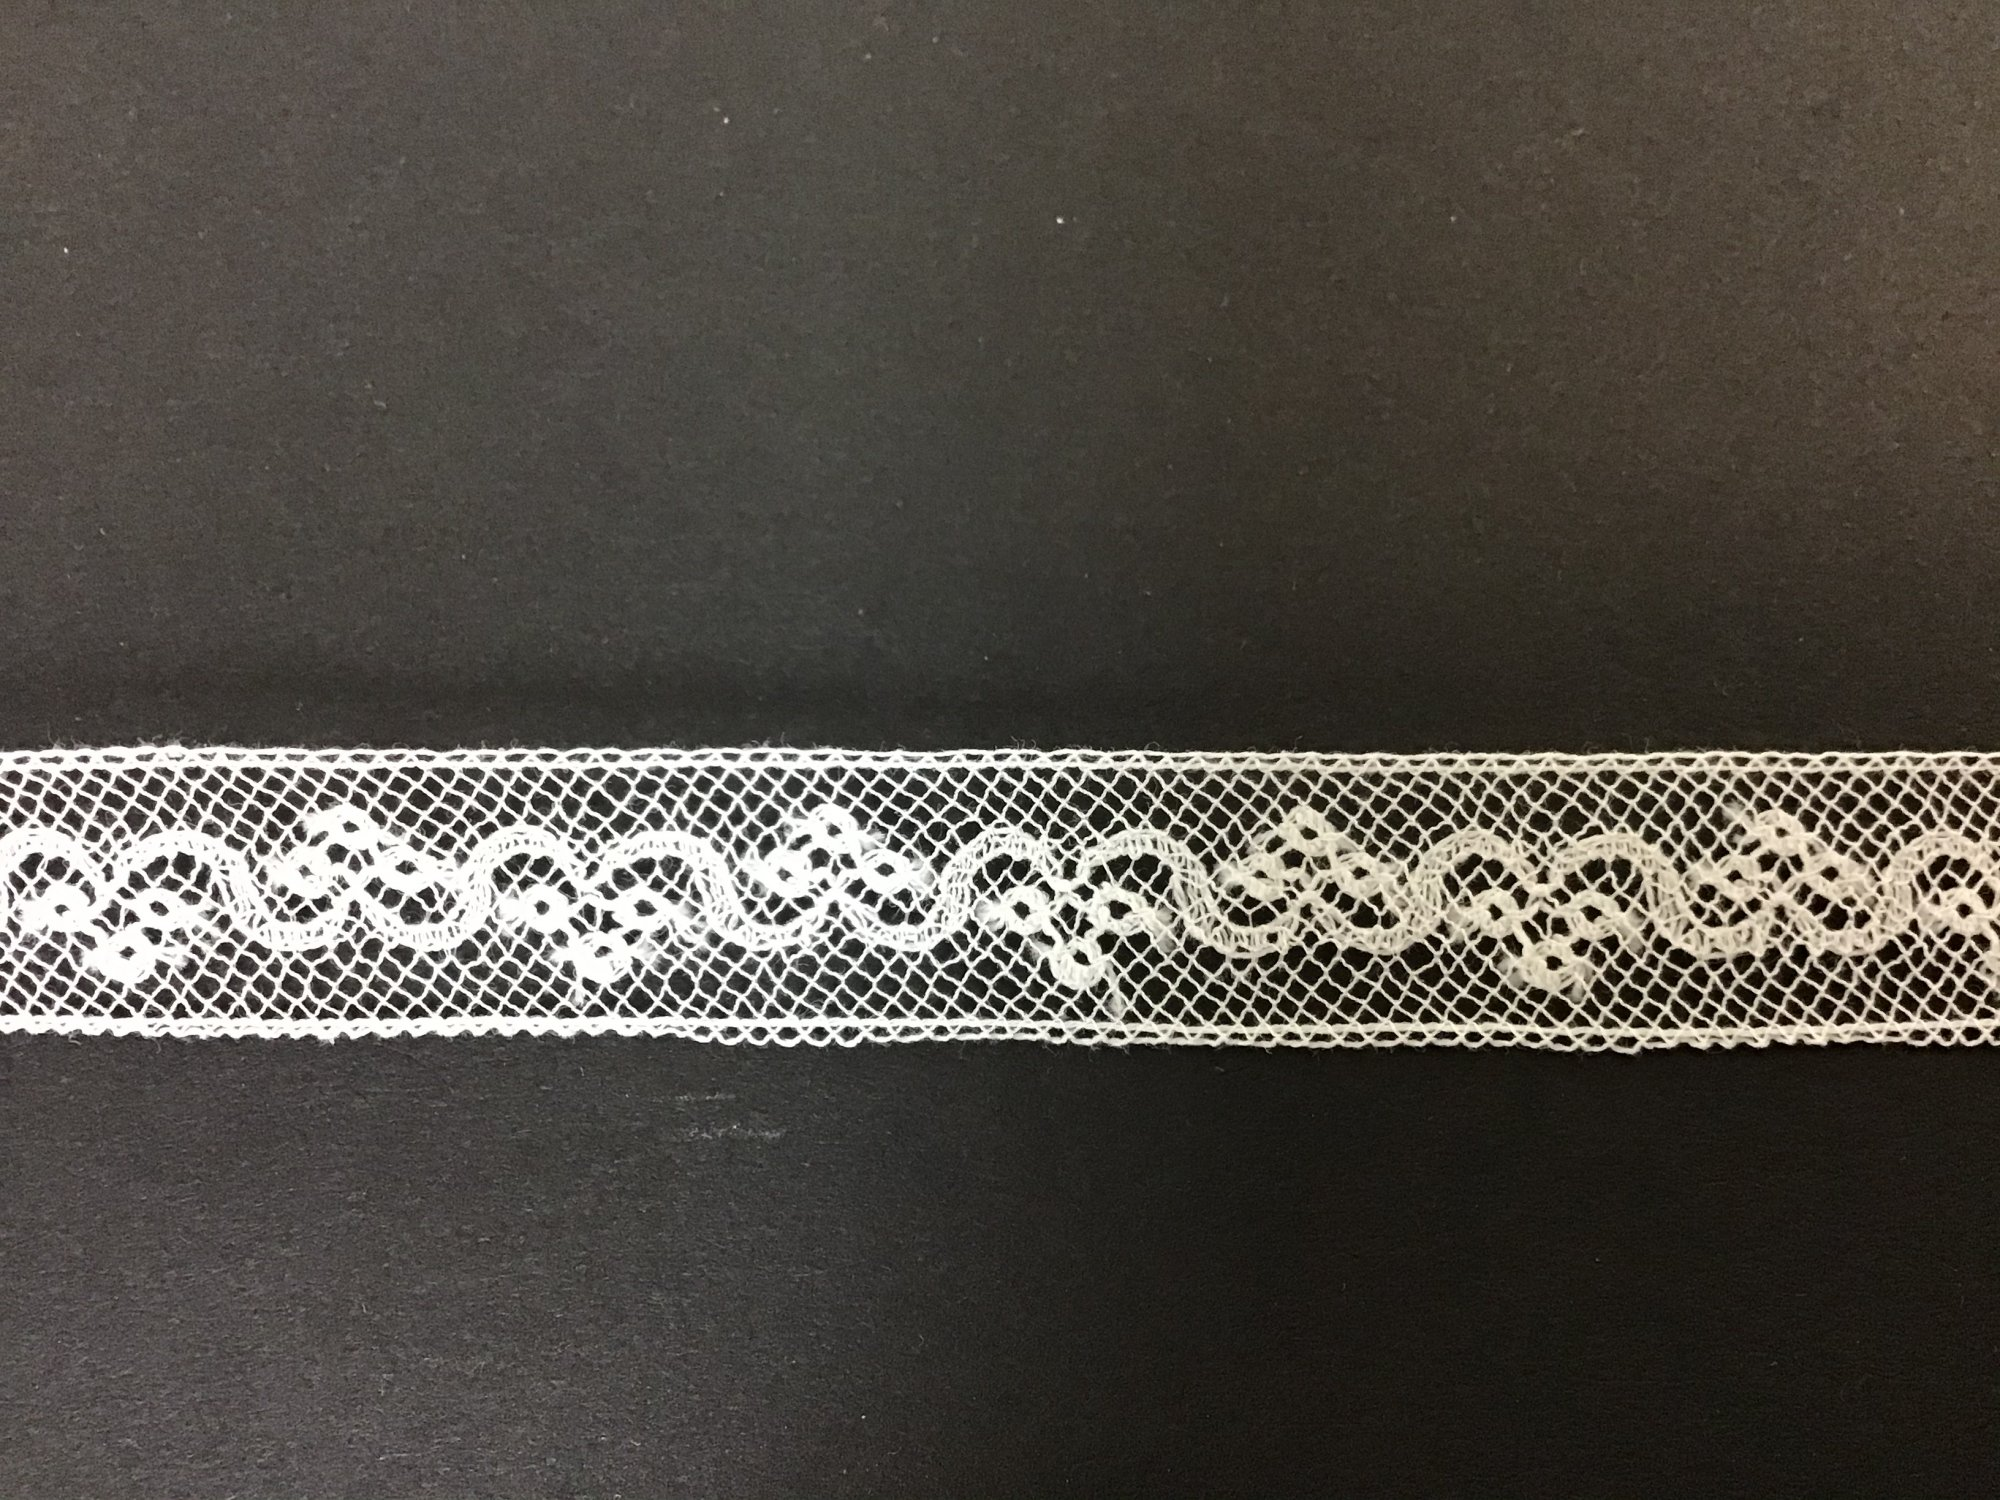 French Maline Lace Insertion .5 Inch White 200376-09